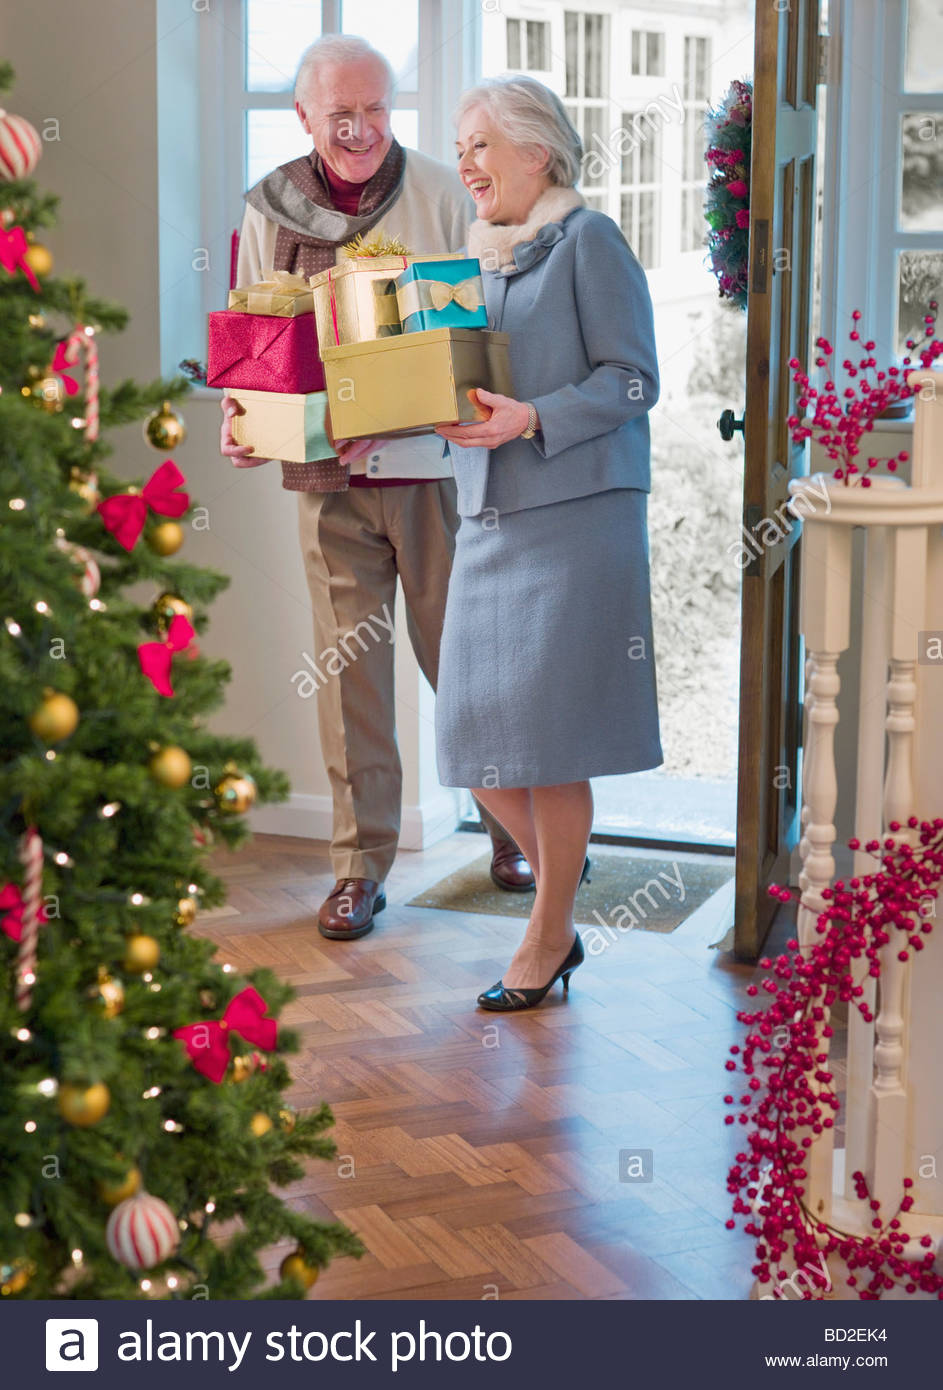 Couple entering house with Christmas gifts - Stock Image